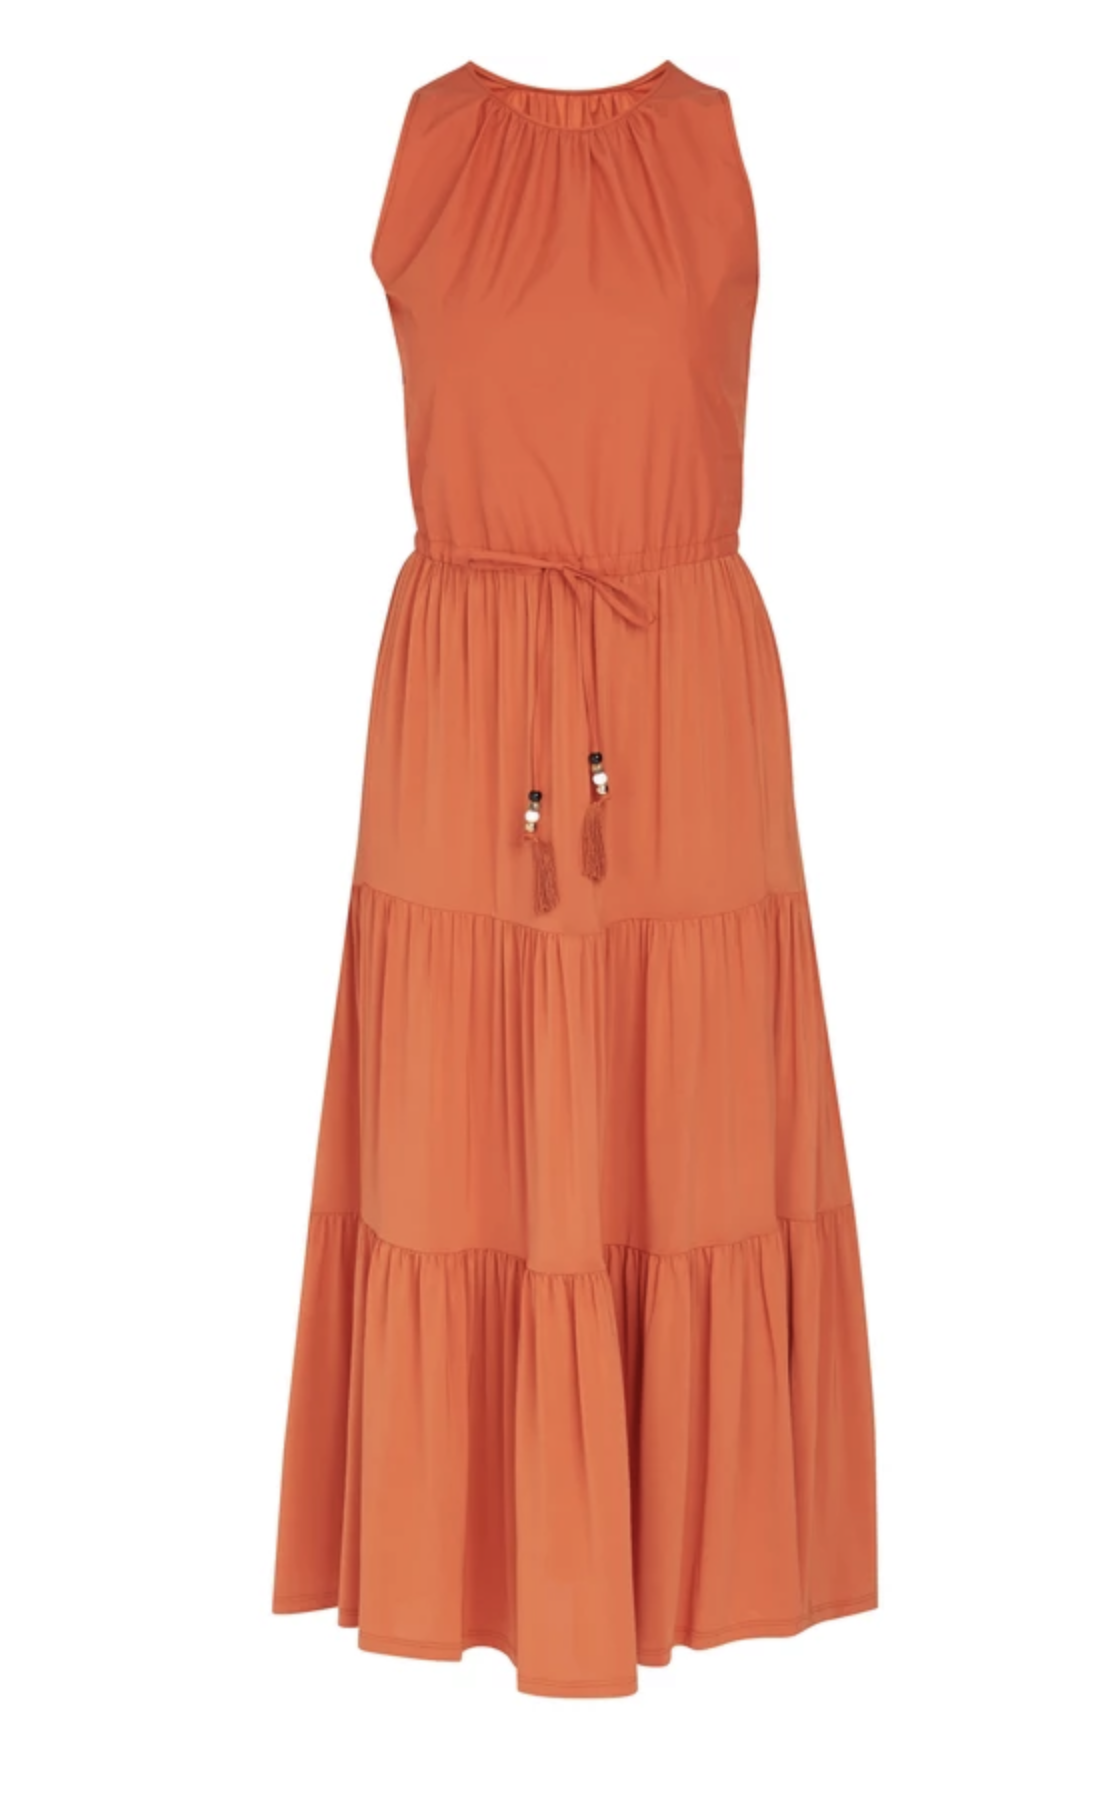 best-summer-dresses-to-buy-in-2021-max-mara-dress